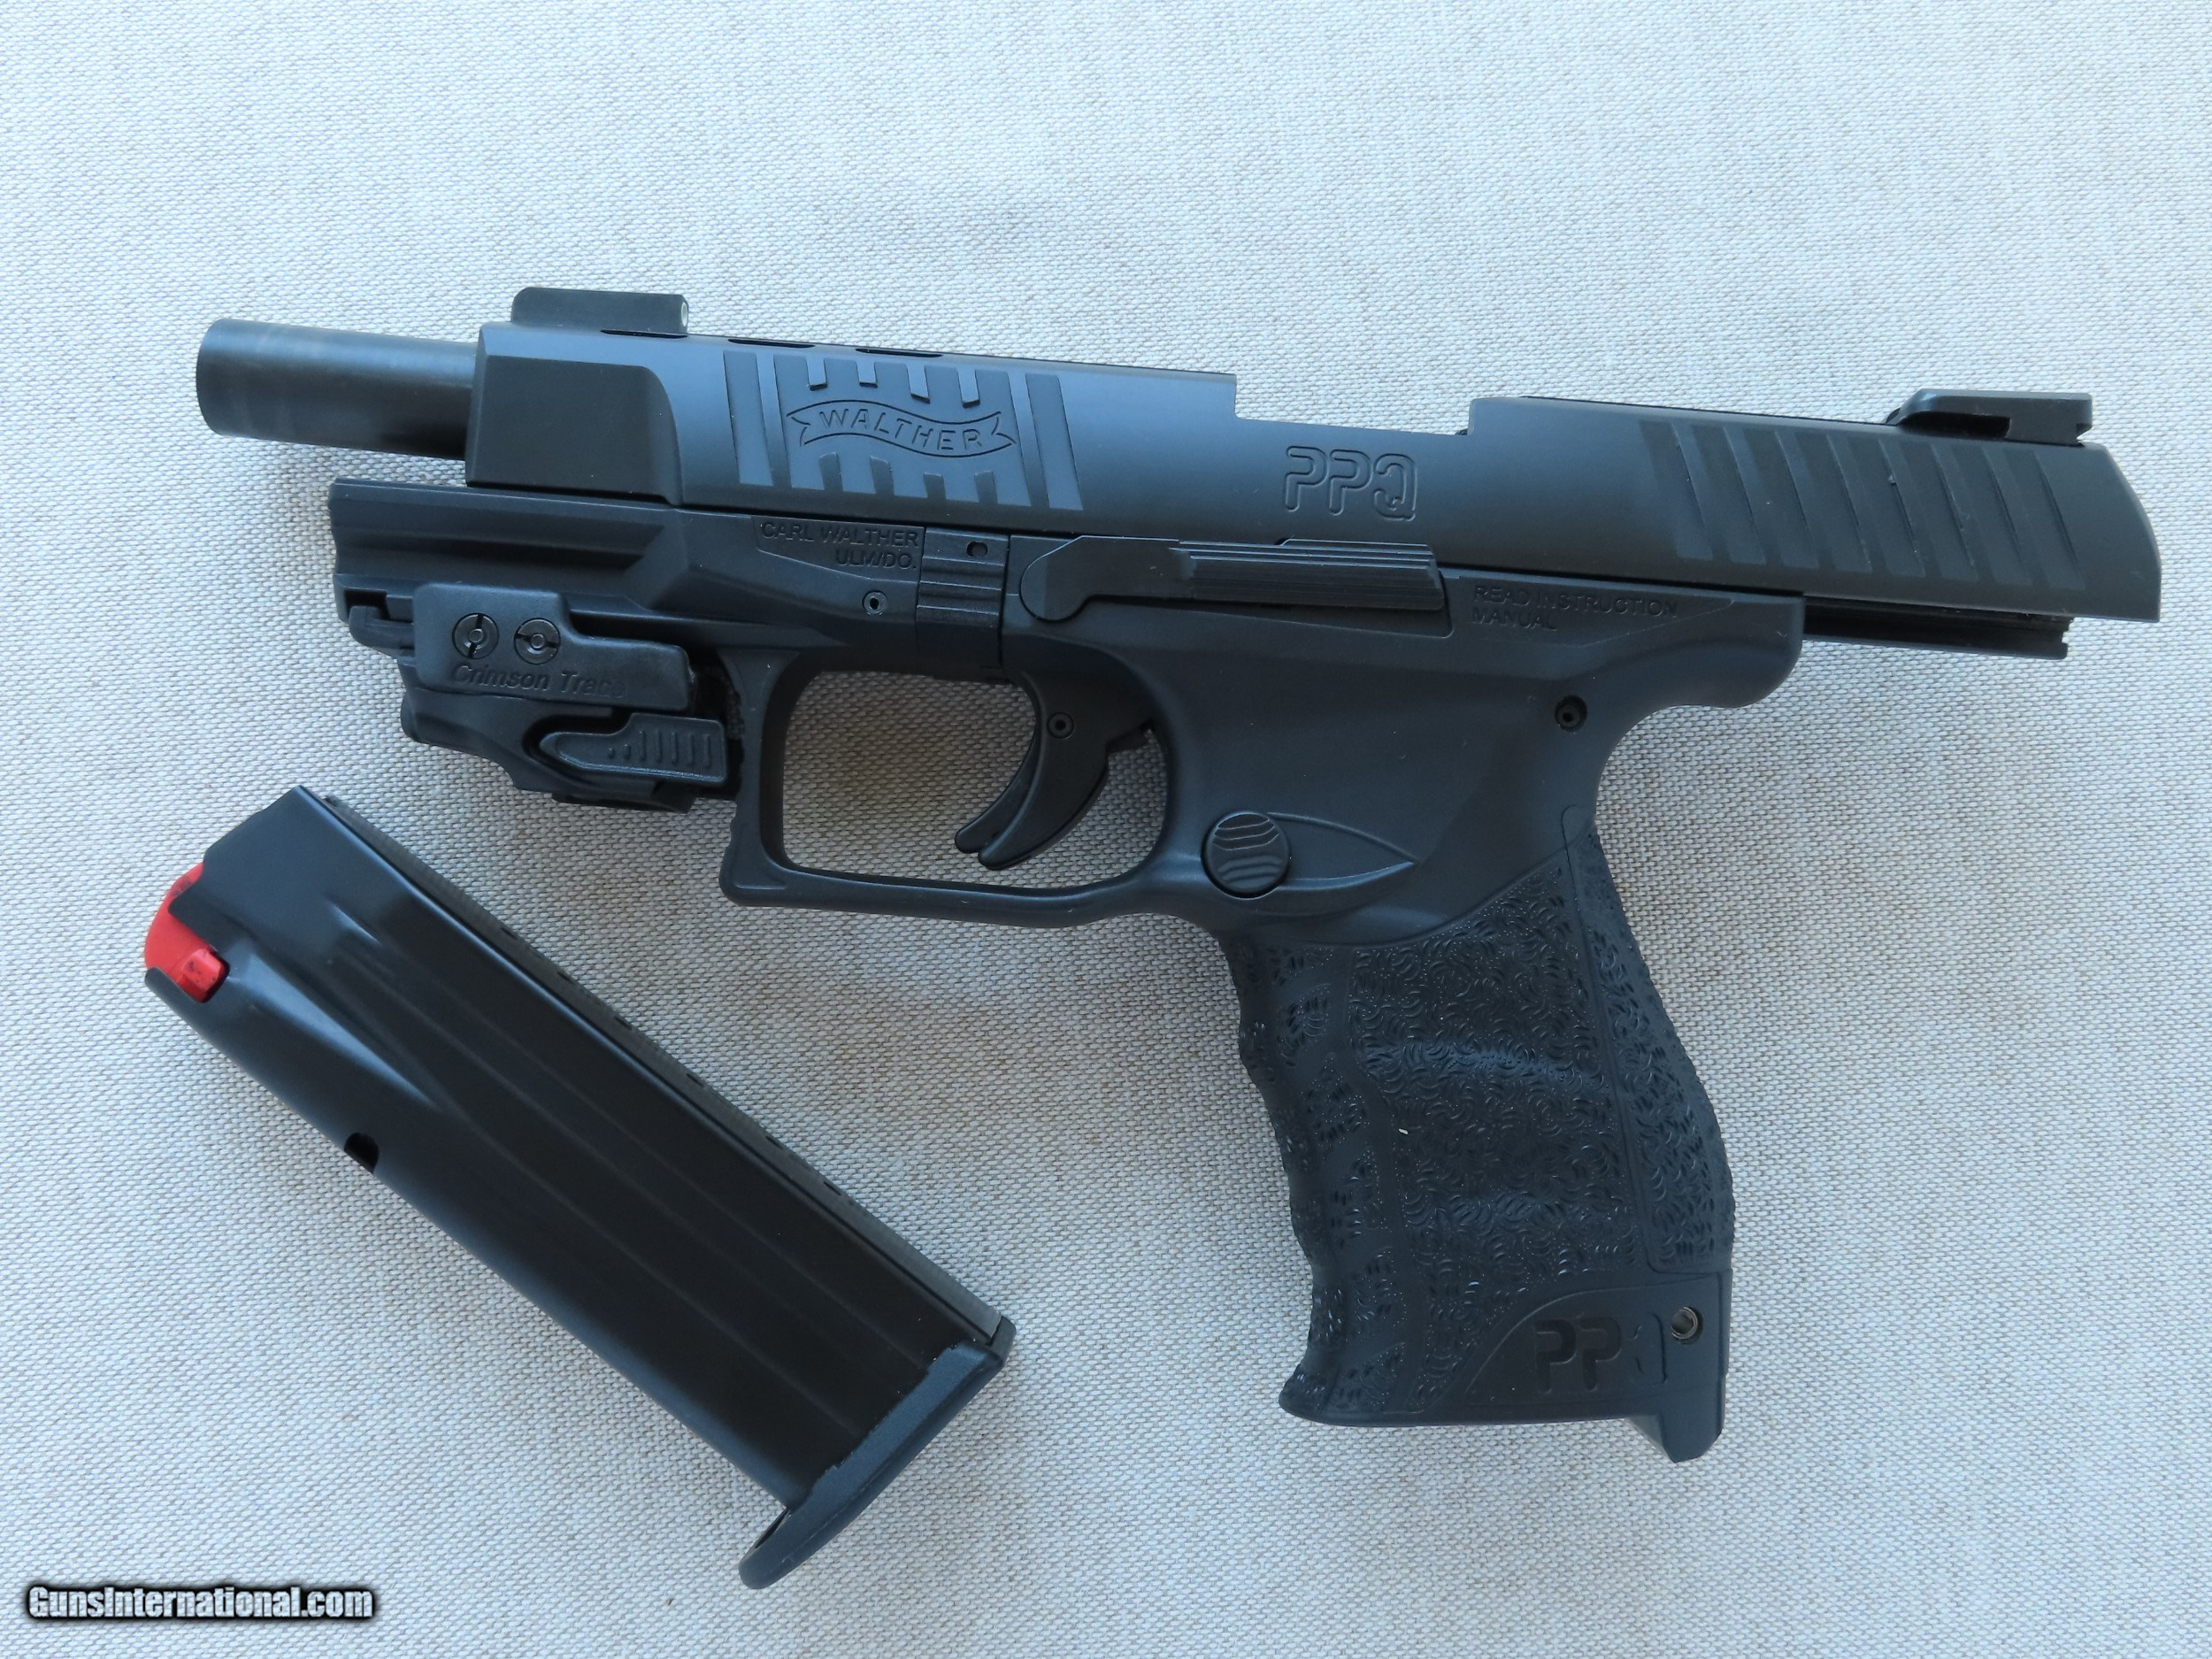 2014 Walther PPQ M2 5